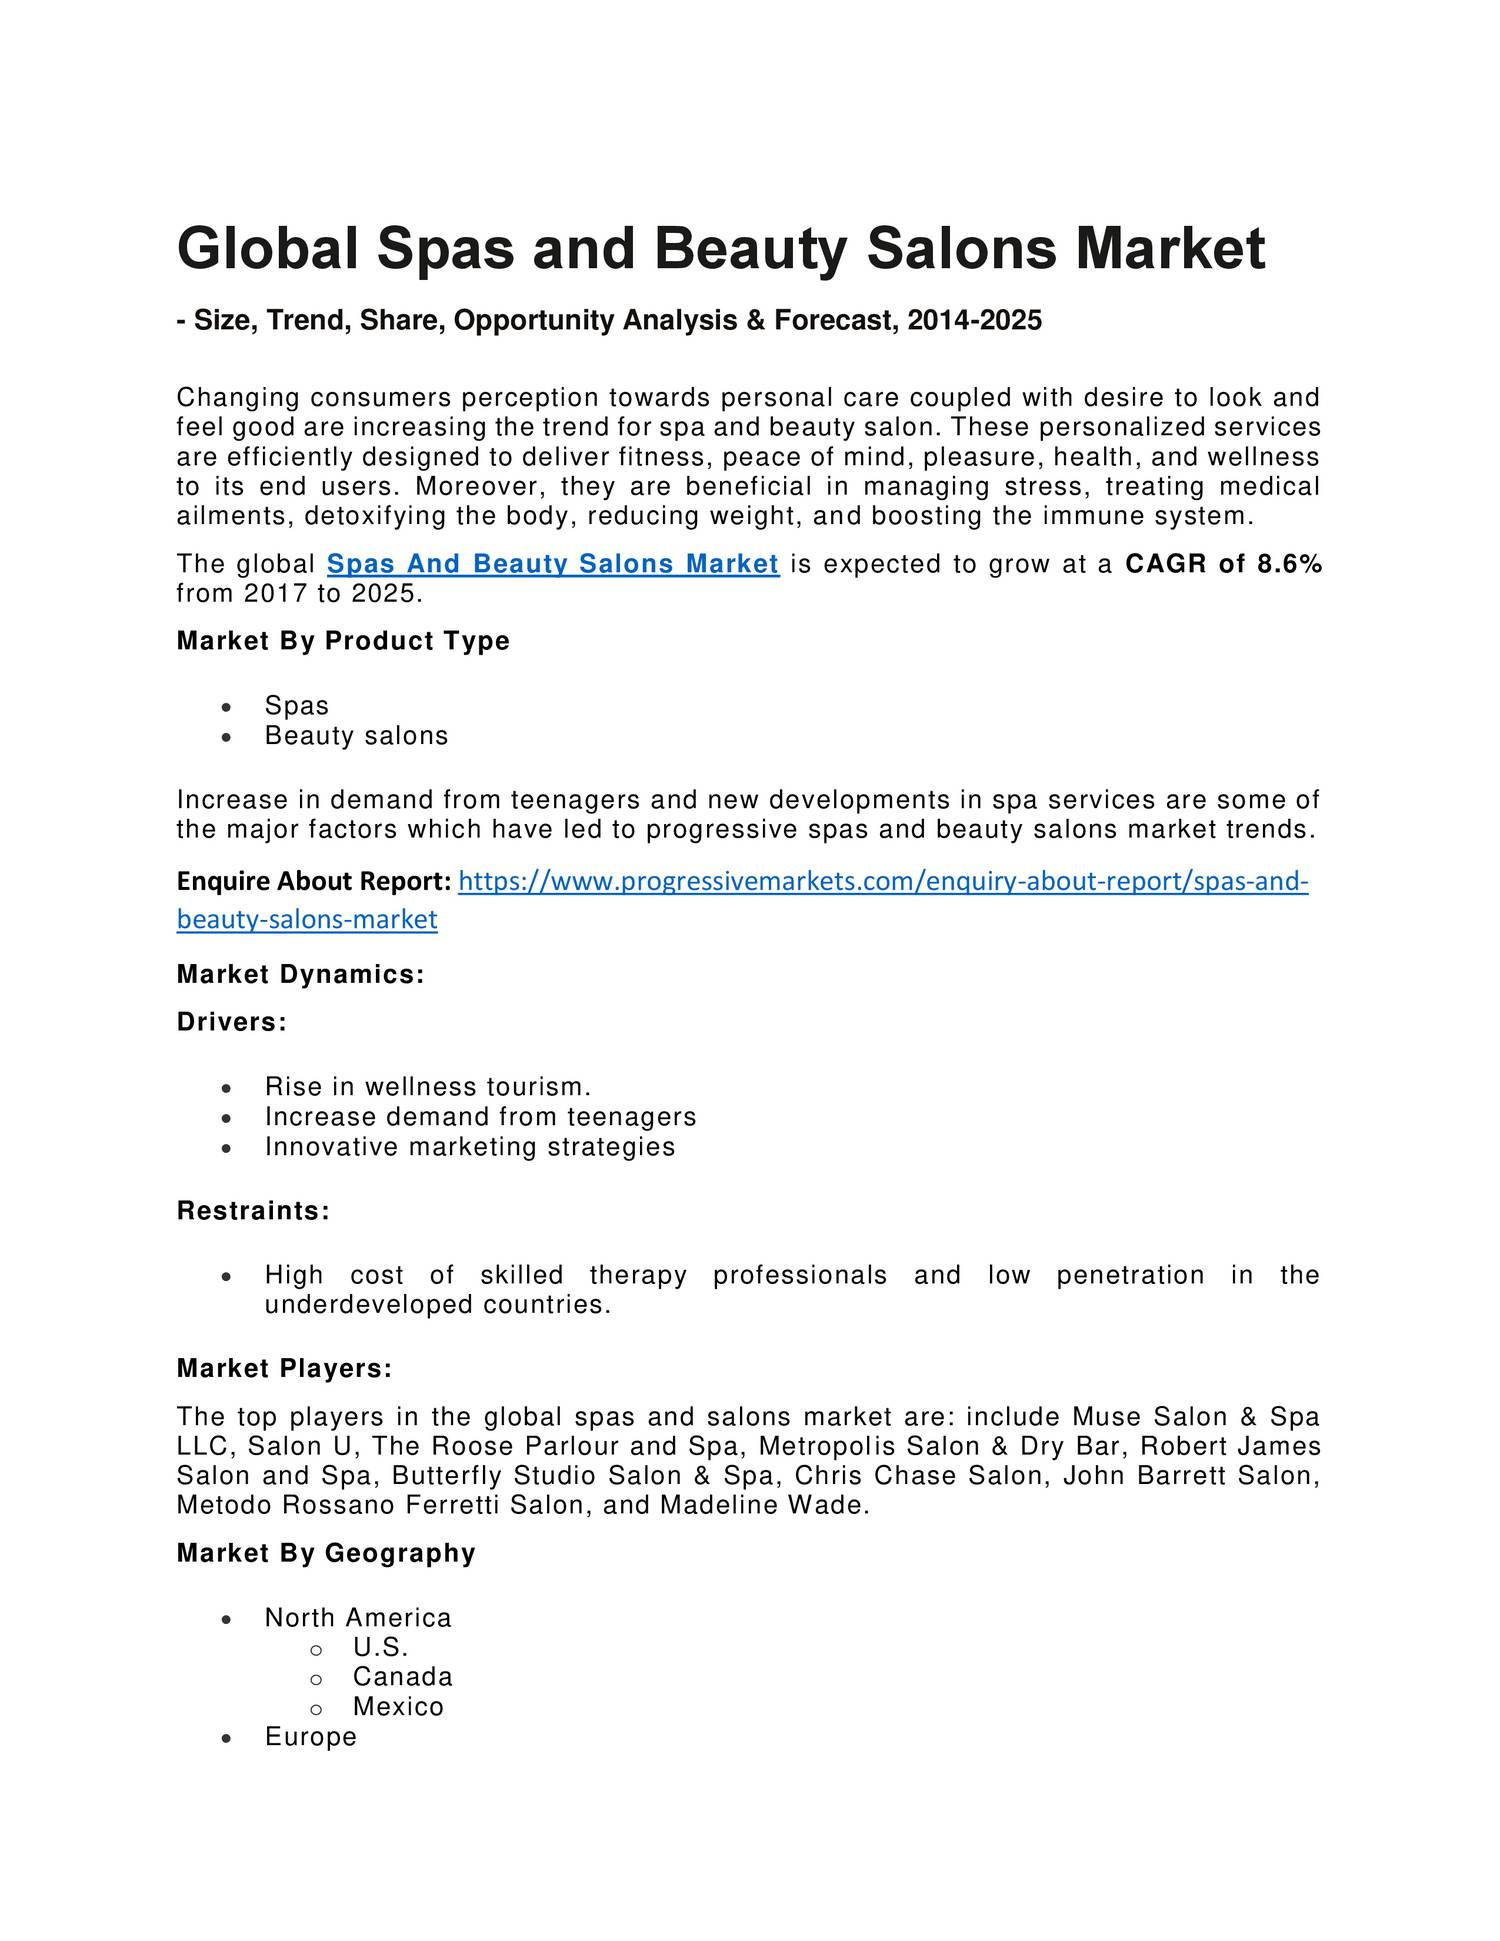 Global spas and beauty salons market hair salon market for A trial beauty treatment salon